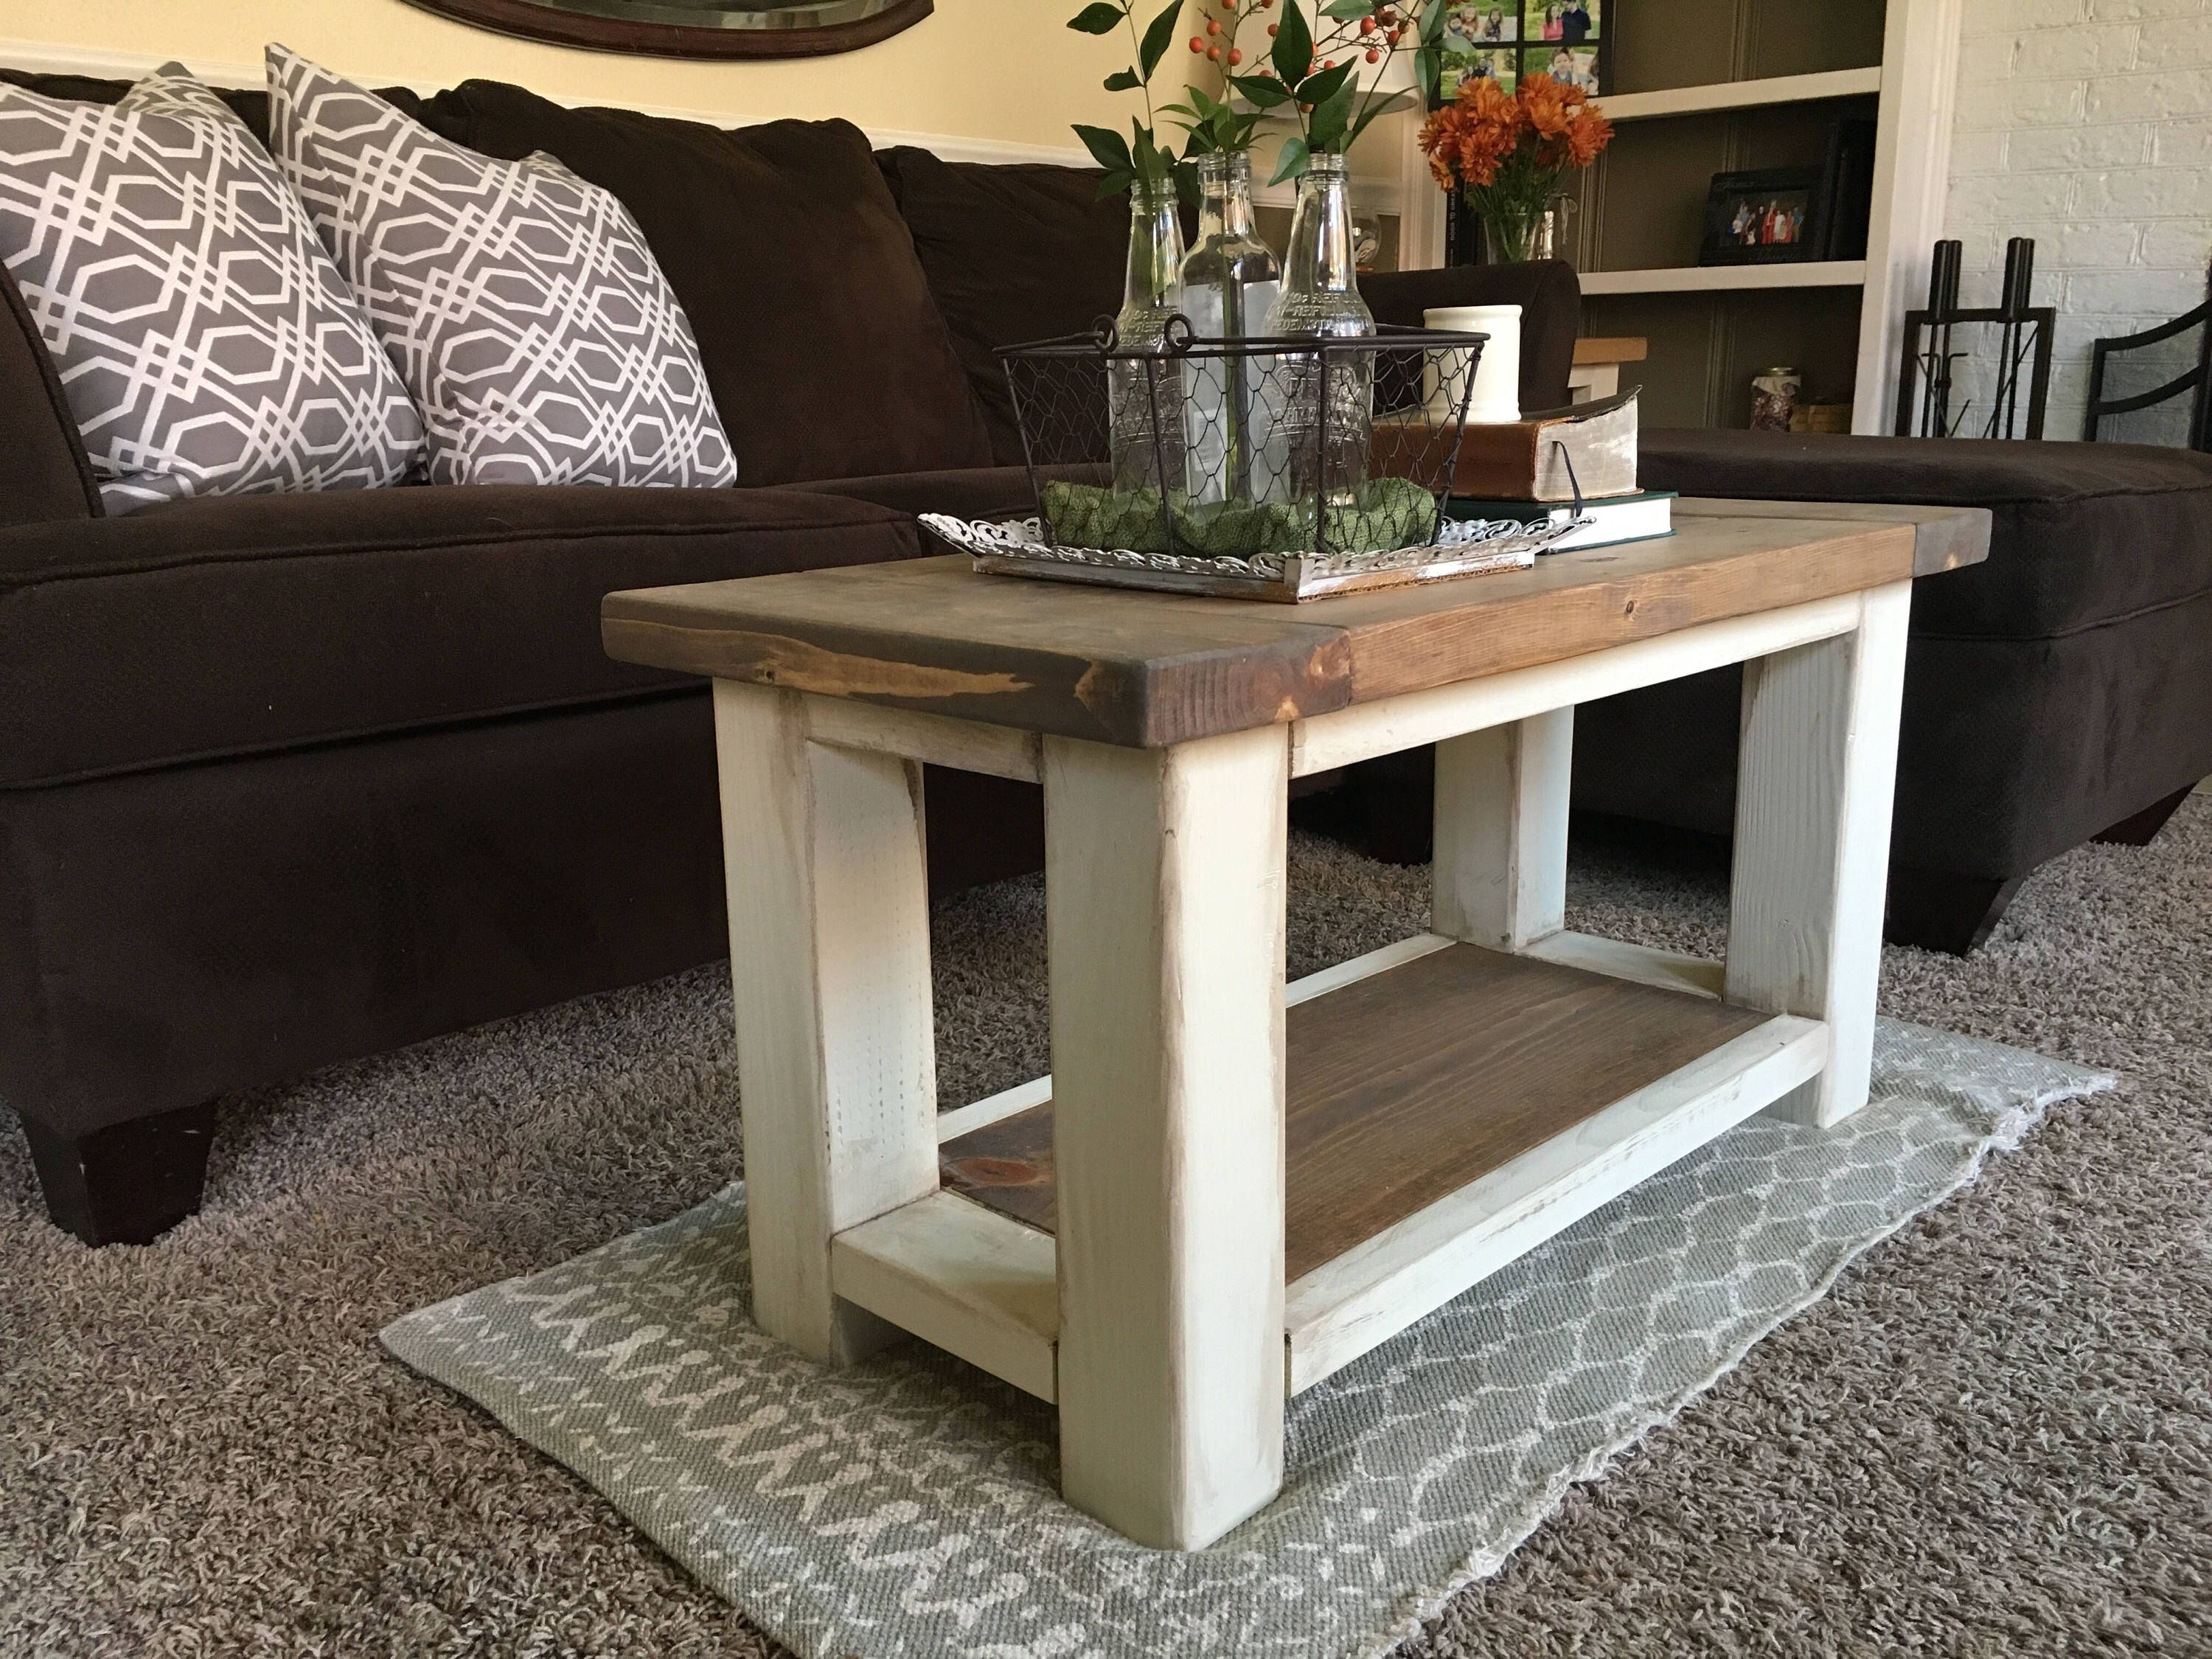 Farmhouse Style Coffee Table No. 2 Solid Wood Rustic